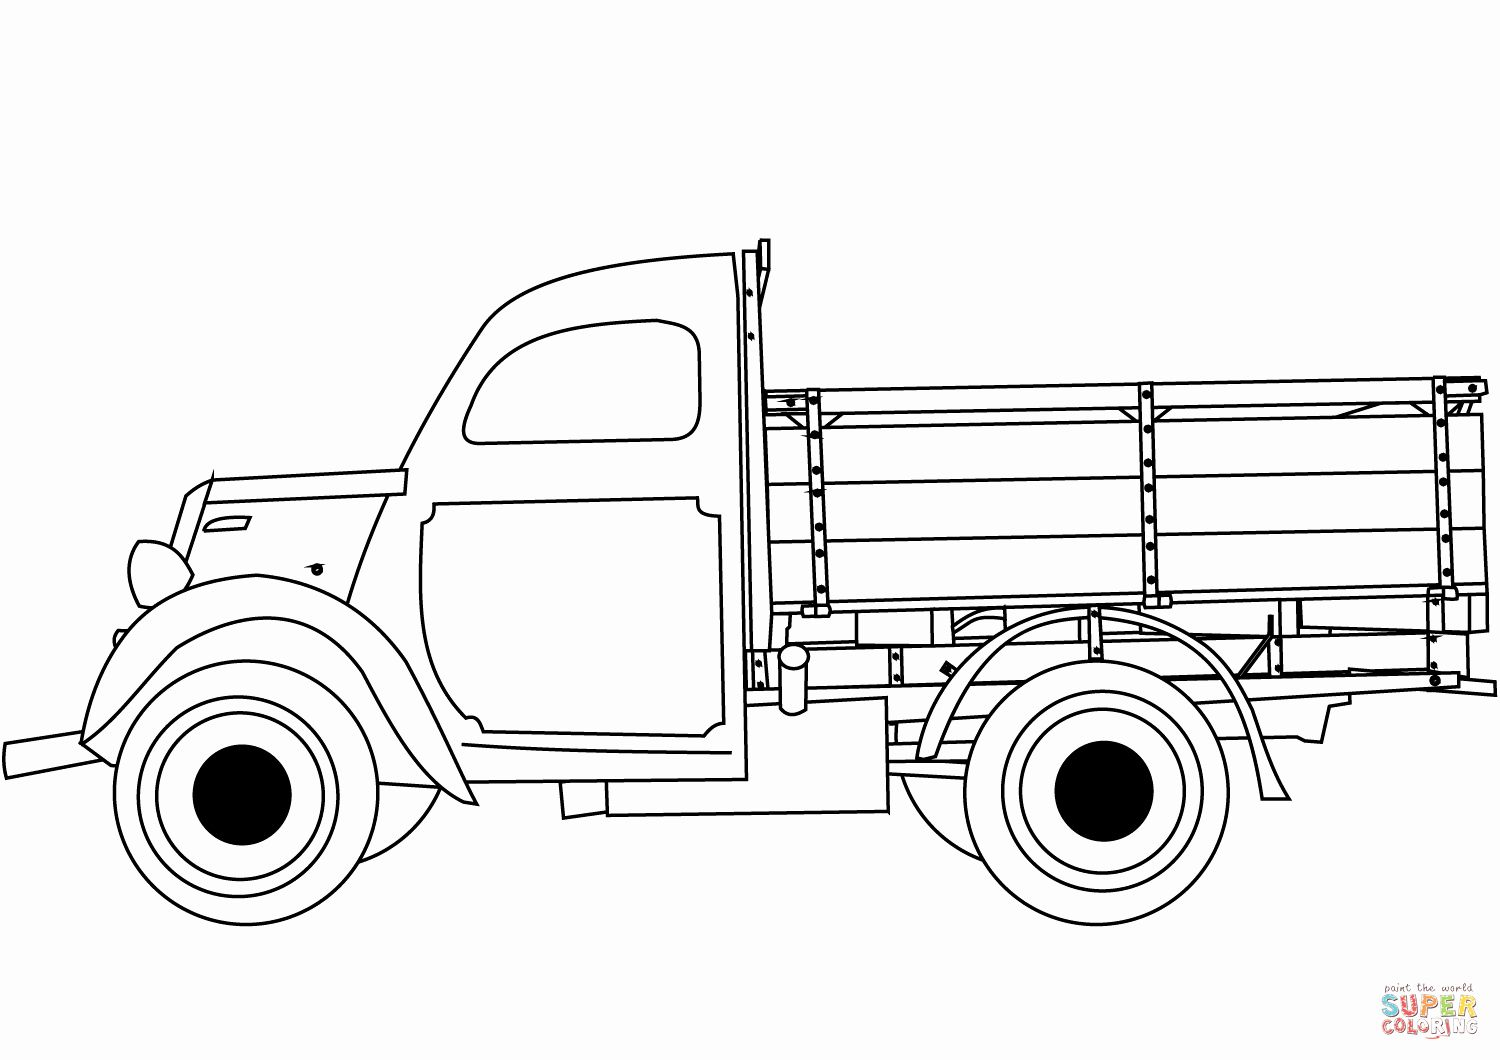 Printable Fire Truck Coloring Page Inspirational Coloring Ideas Free Printable Ford Truck Truck Coloring Pages Monster Truck Coloring Pages Cars Coloring Pages